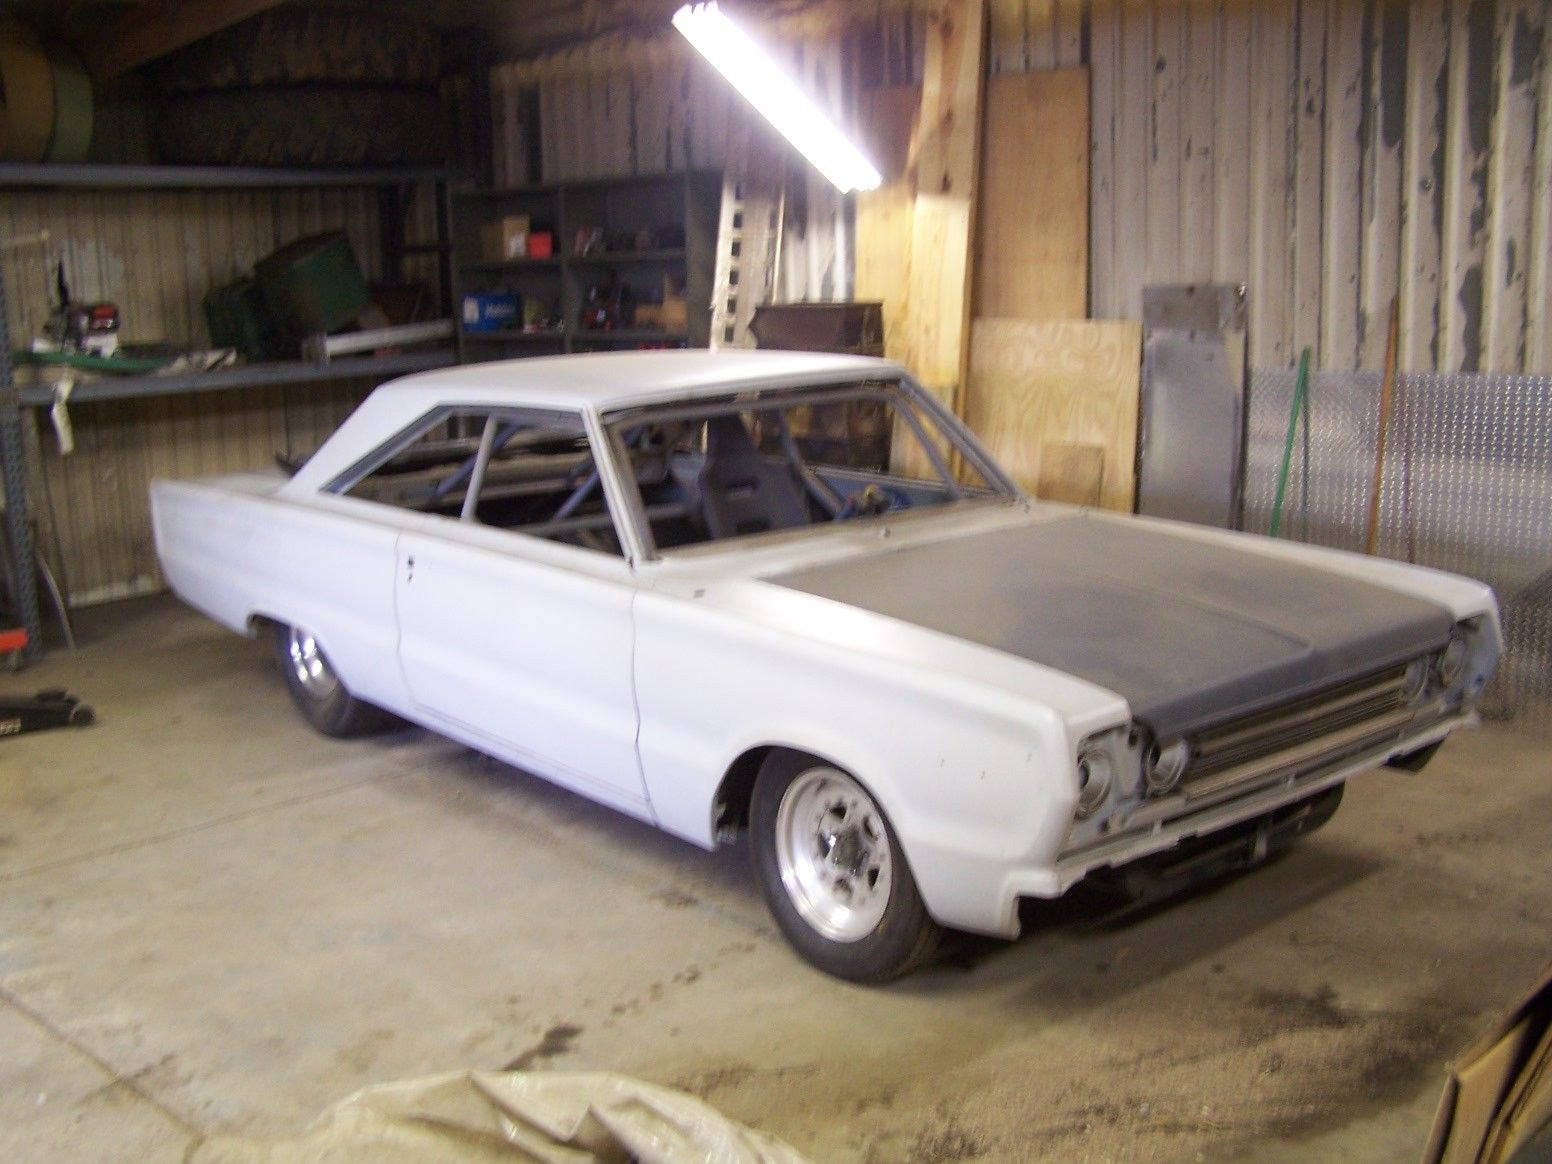 1967 Plymouth Belvedere II pro street project with extras for sale in  Boonville, Indiana, United States